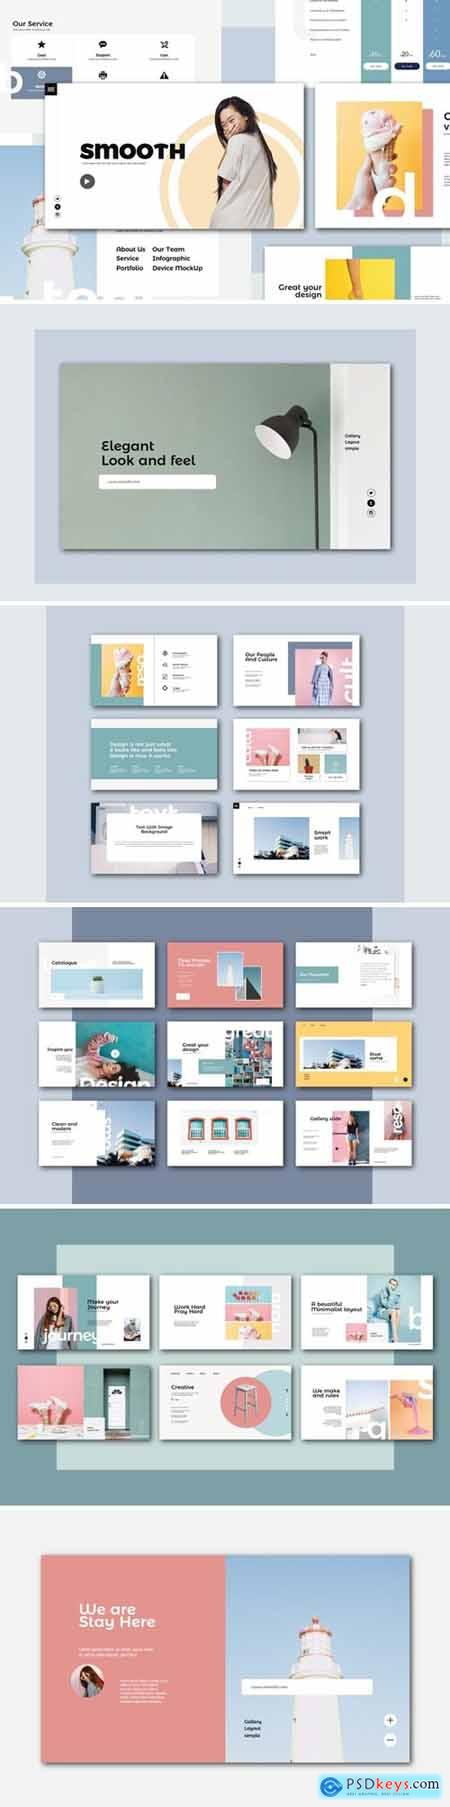 Smooth Powerpoint, Keynote and Google Slides Templates